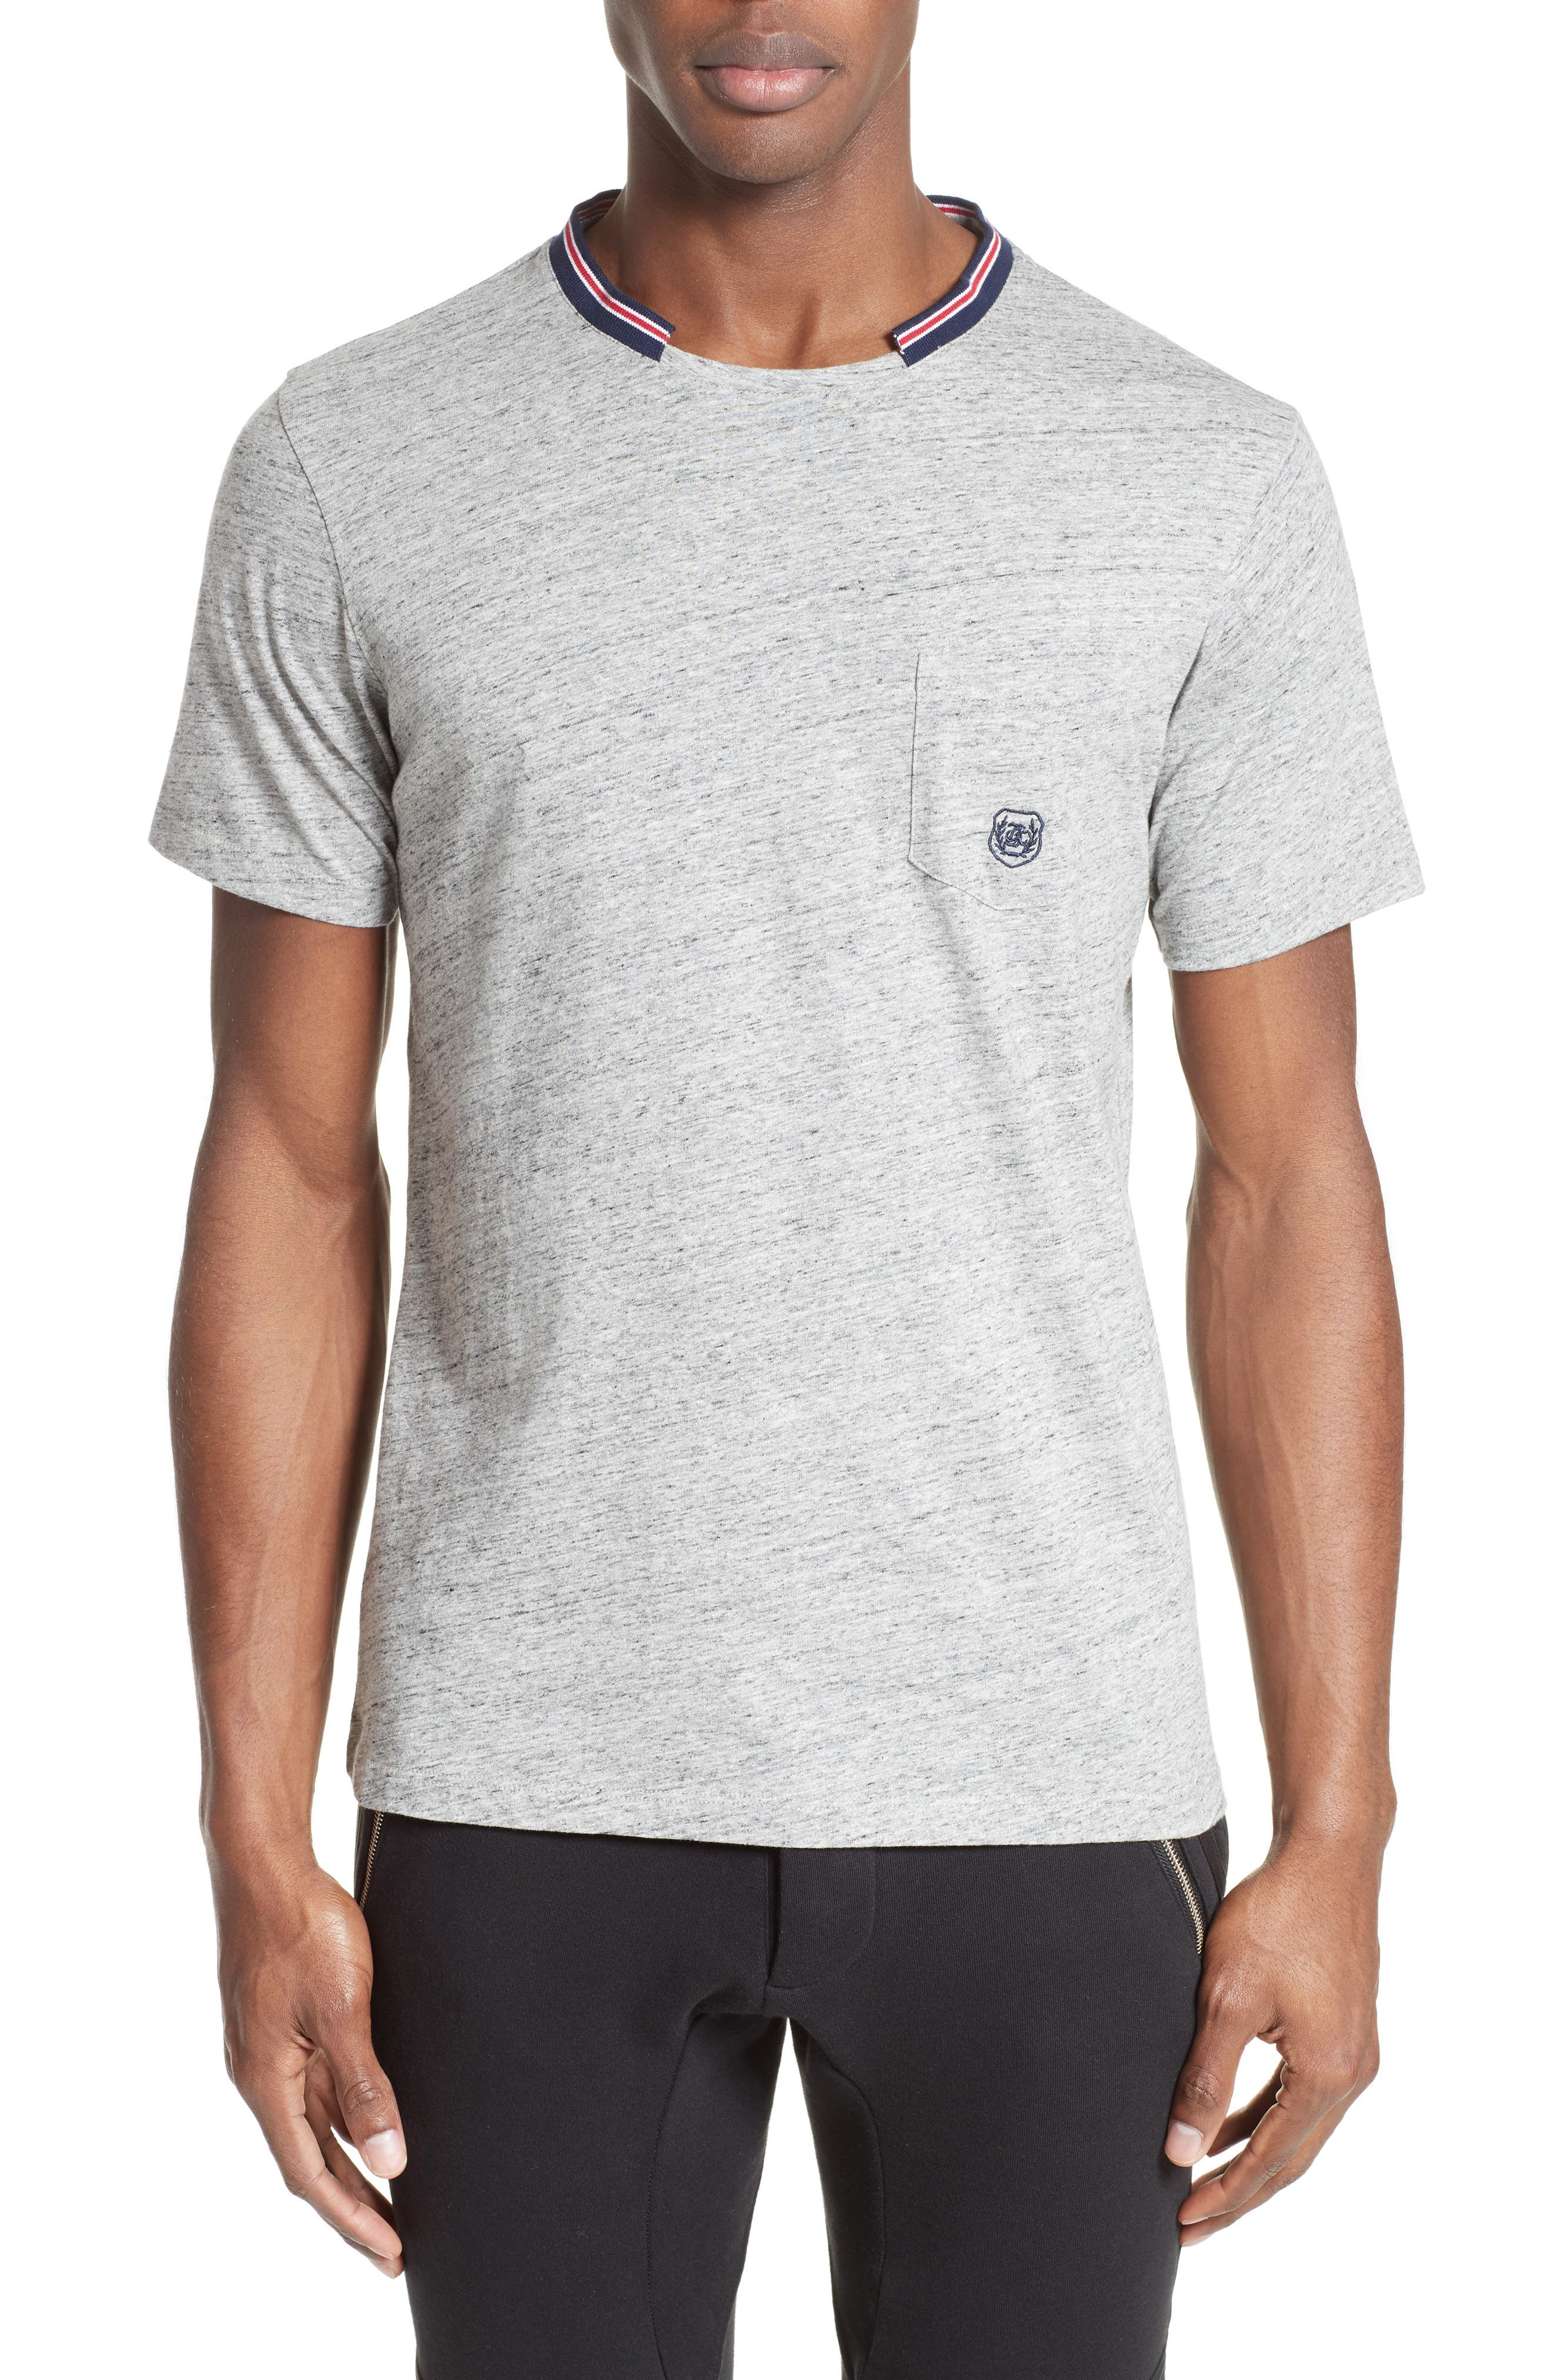 The Kooples Pocket T-Shirt